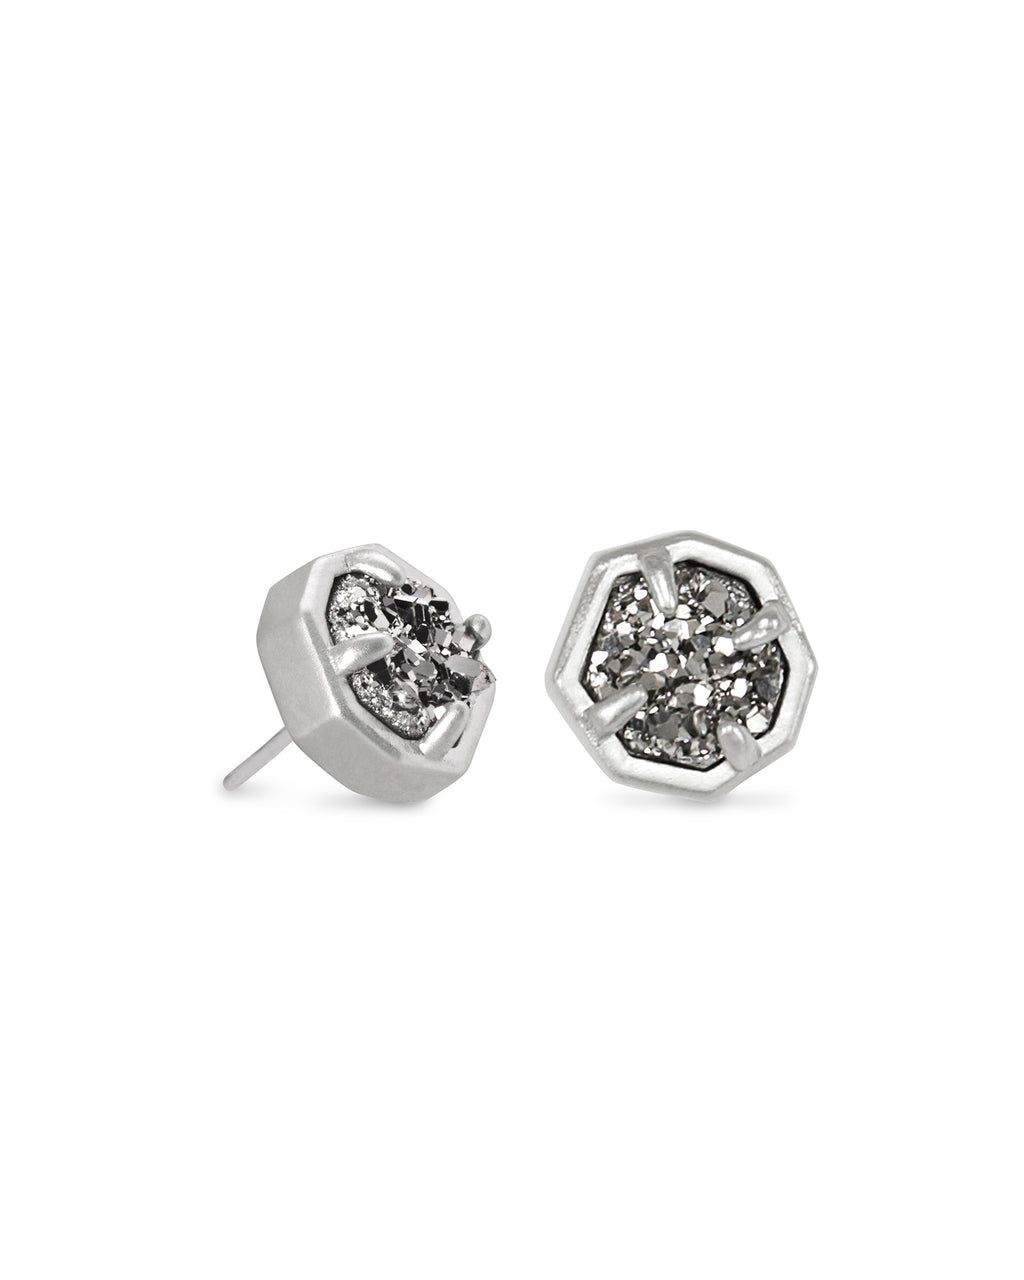 Nola Silver Stud Earrings In Platinum Drusy